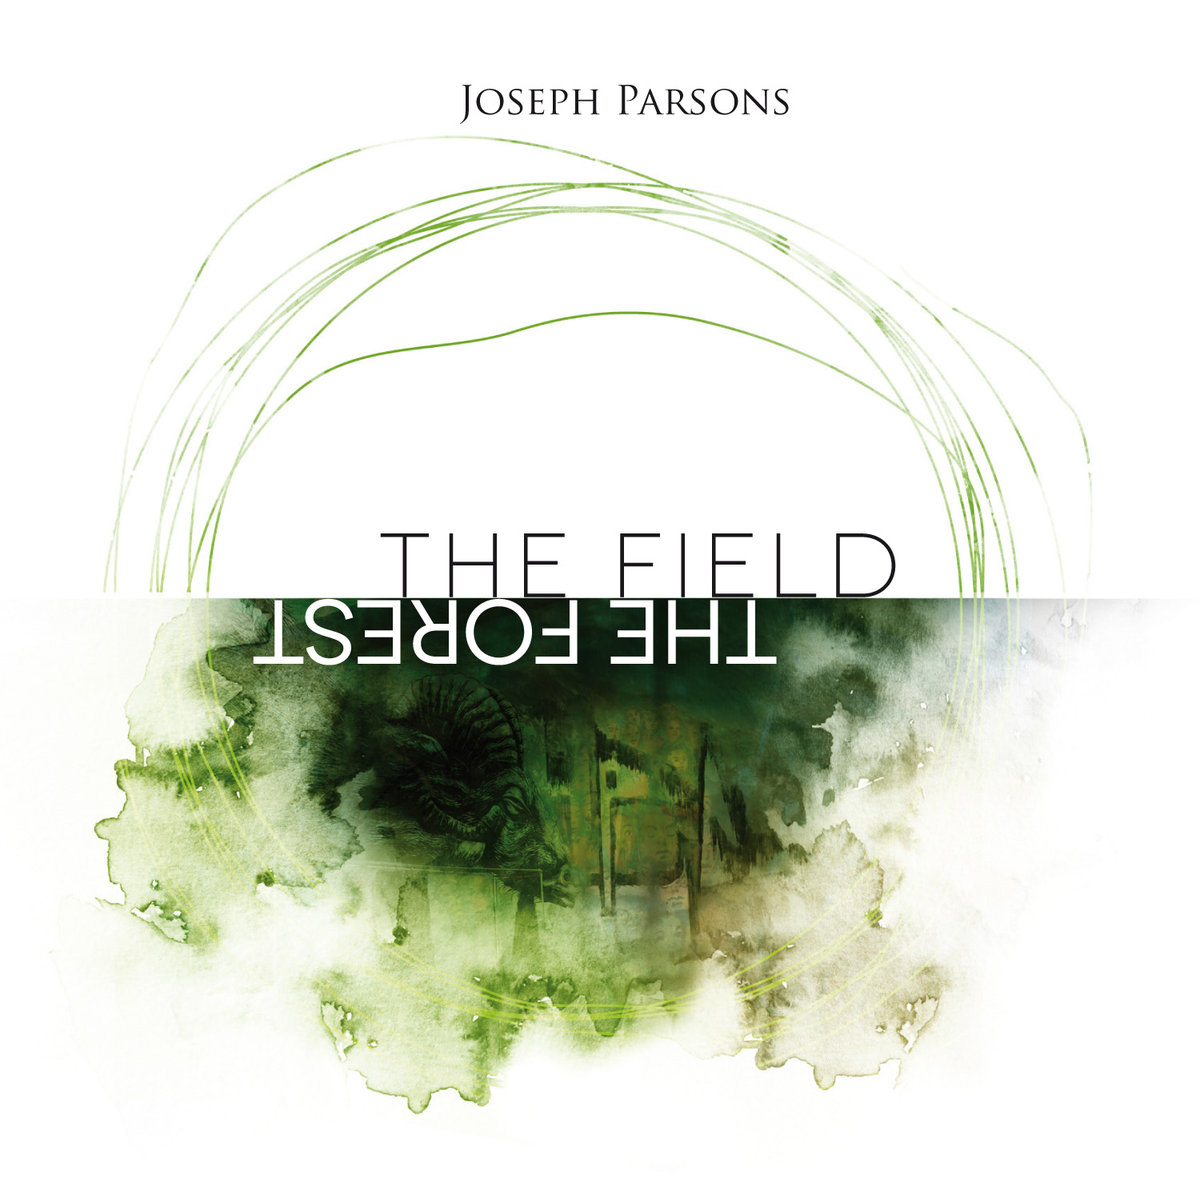 joseph-parsons-the-field-the-forest